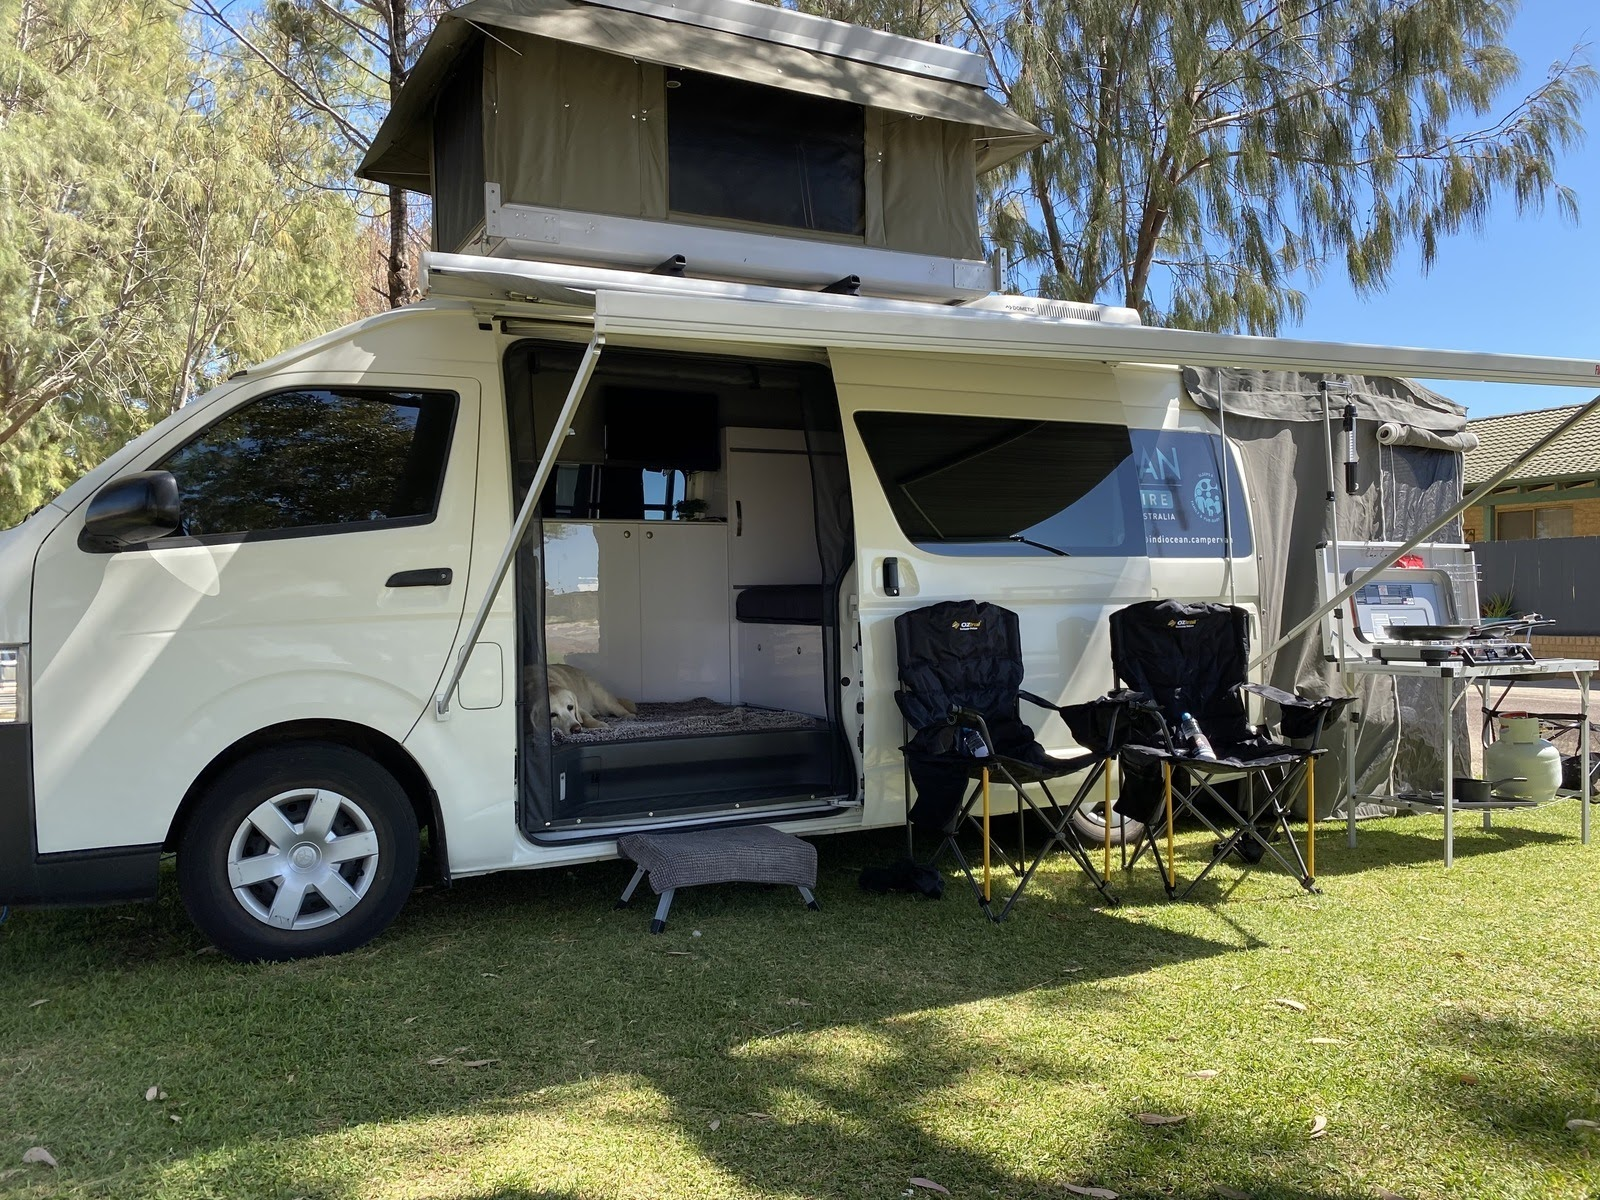 Motorhome parked on grass opened up